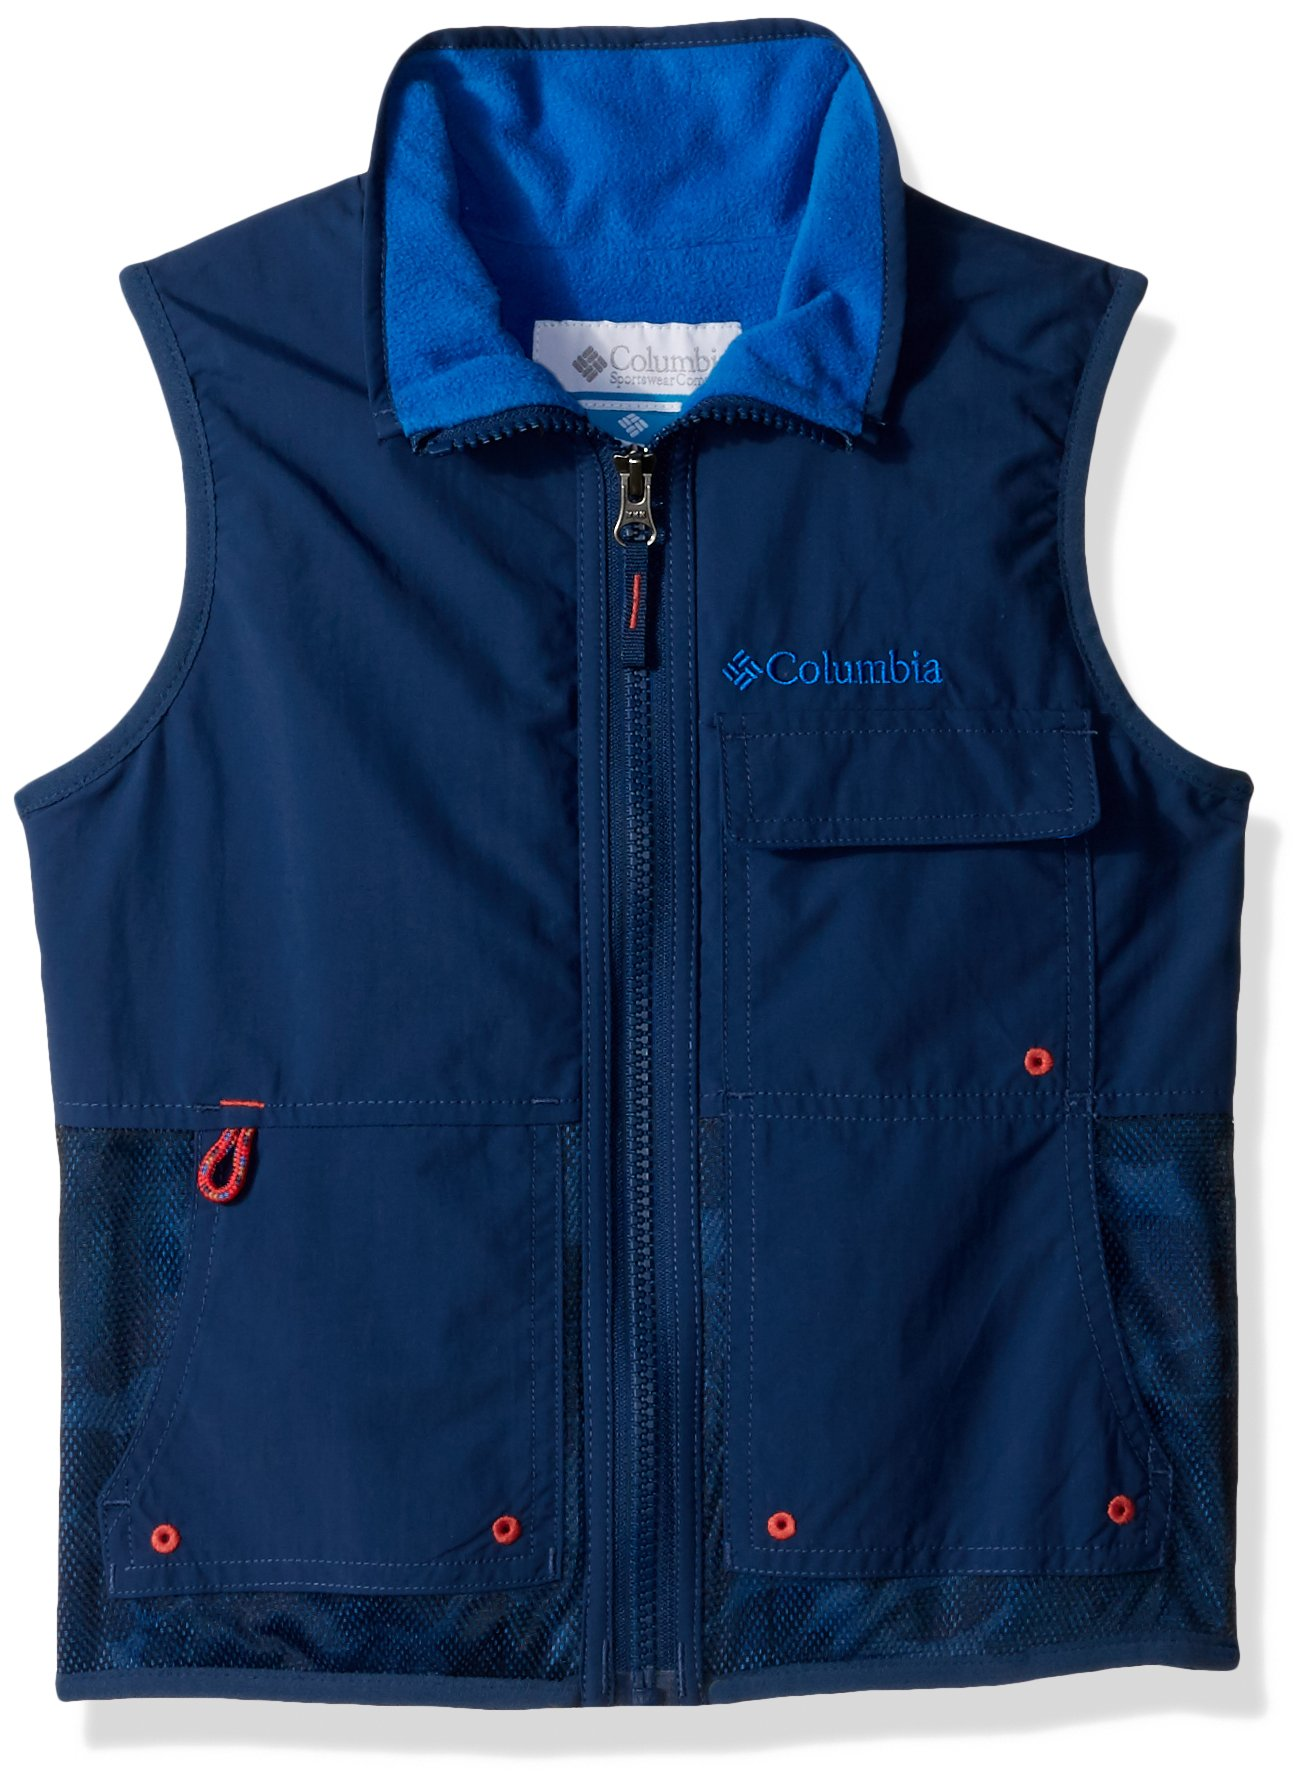 Columbia Boys' Big Next Destination B Lined Vest, Carbon, X-Small by Columbia